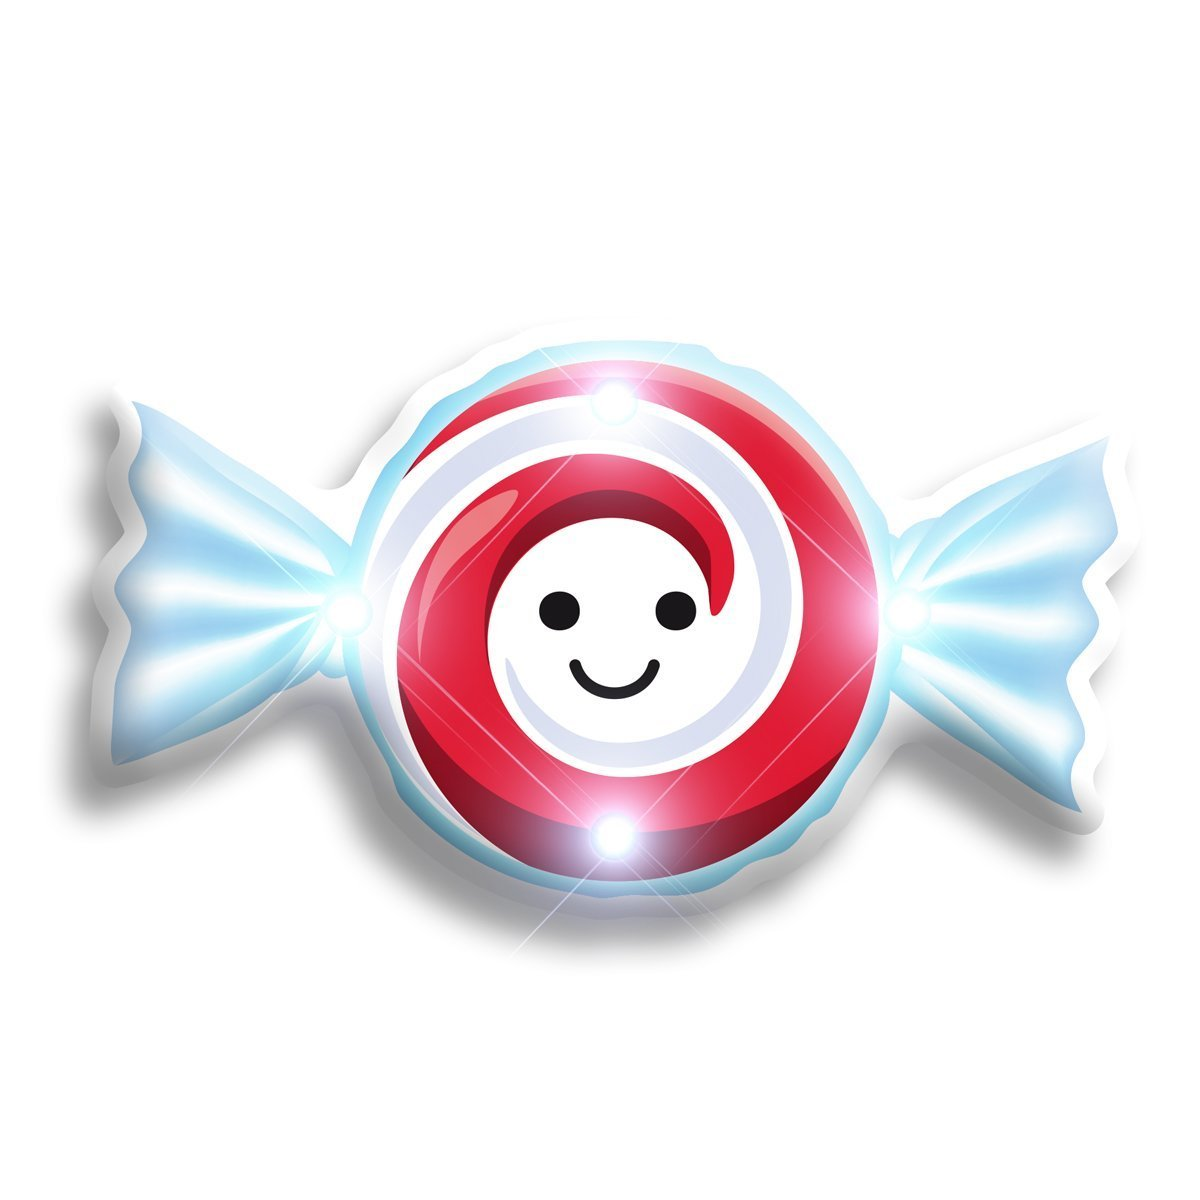 Happy Peppermint Candy Flashing Body Light Lapel Pins All Products